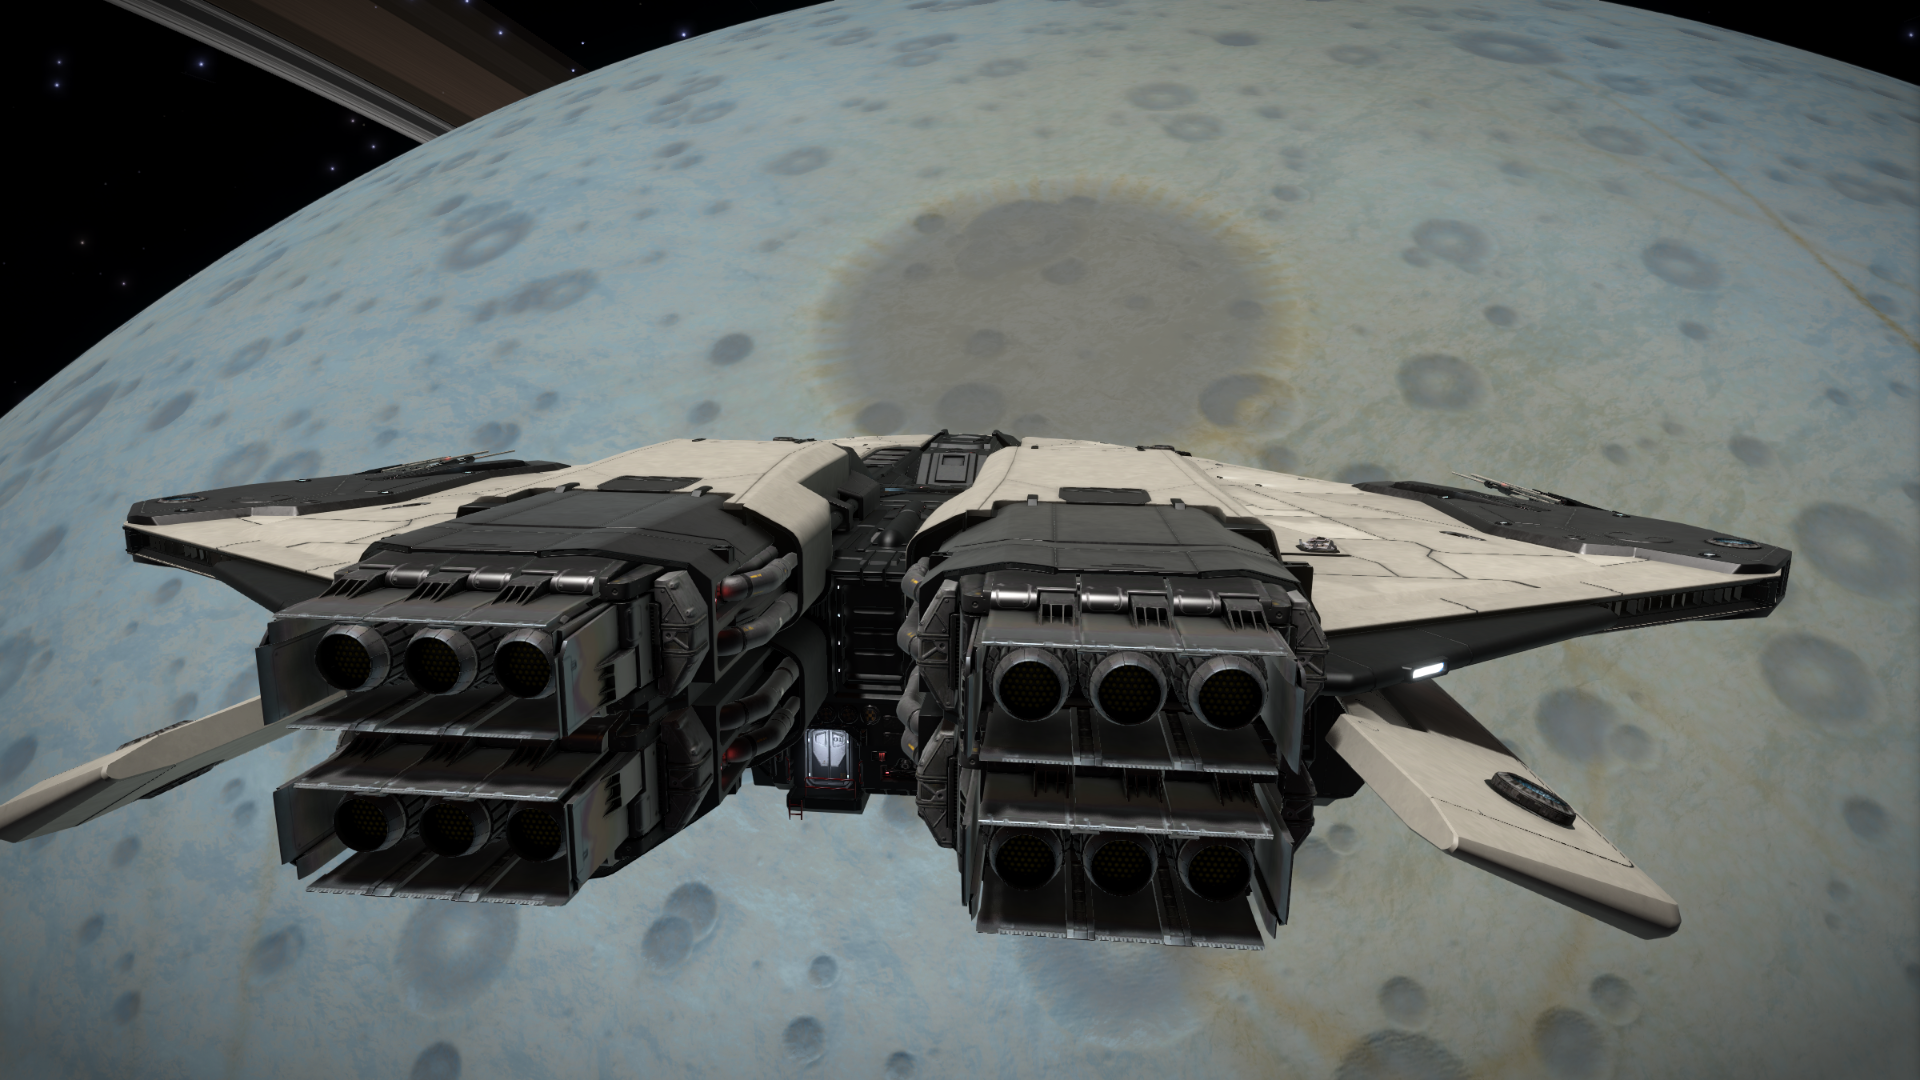 Diary of A Galactic Uber Driver: A Strange New Home